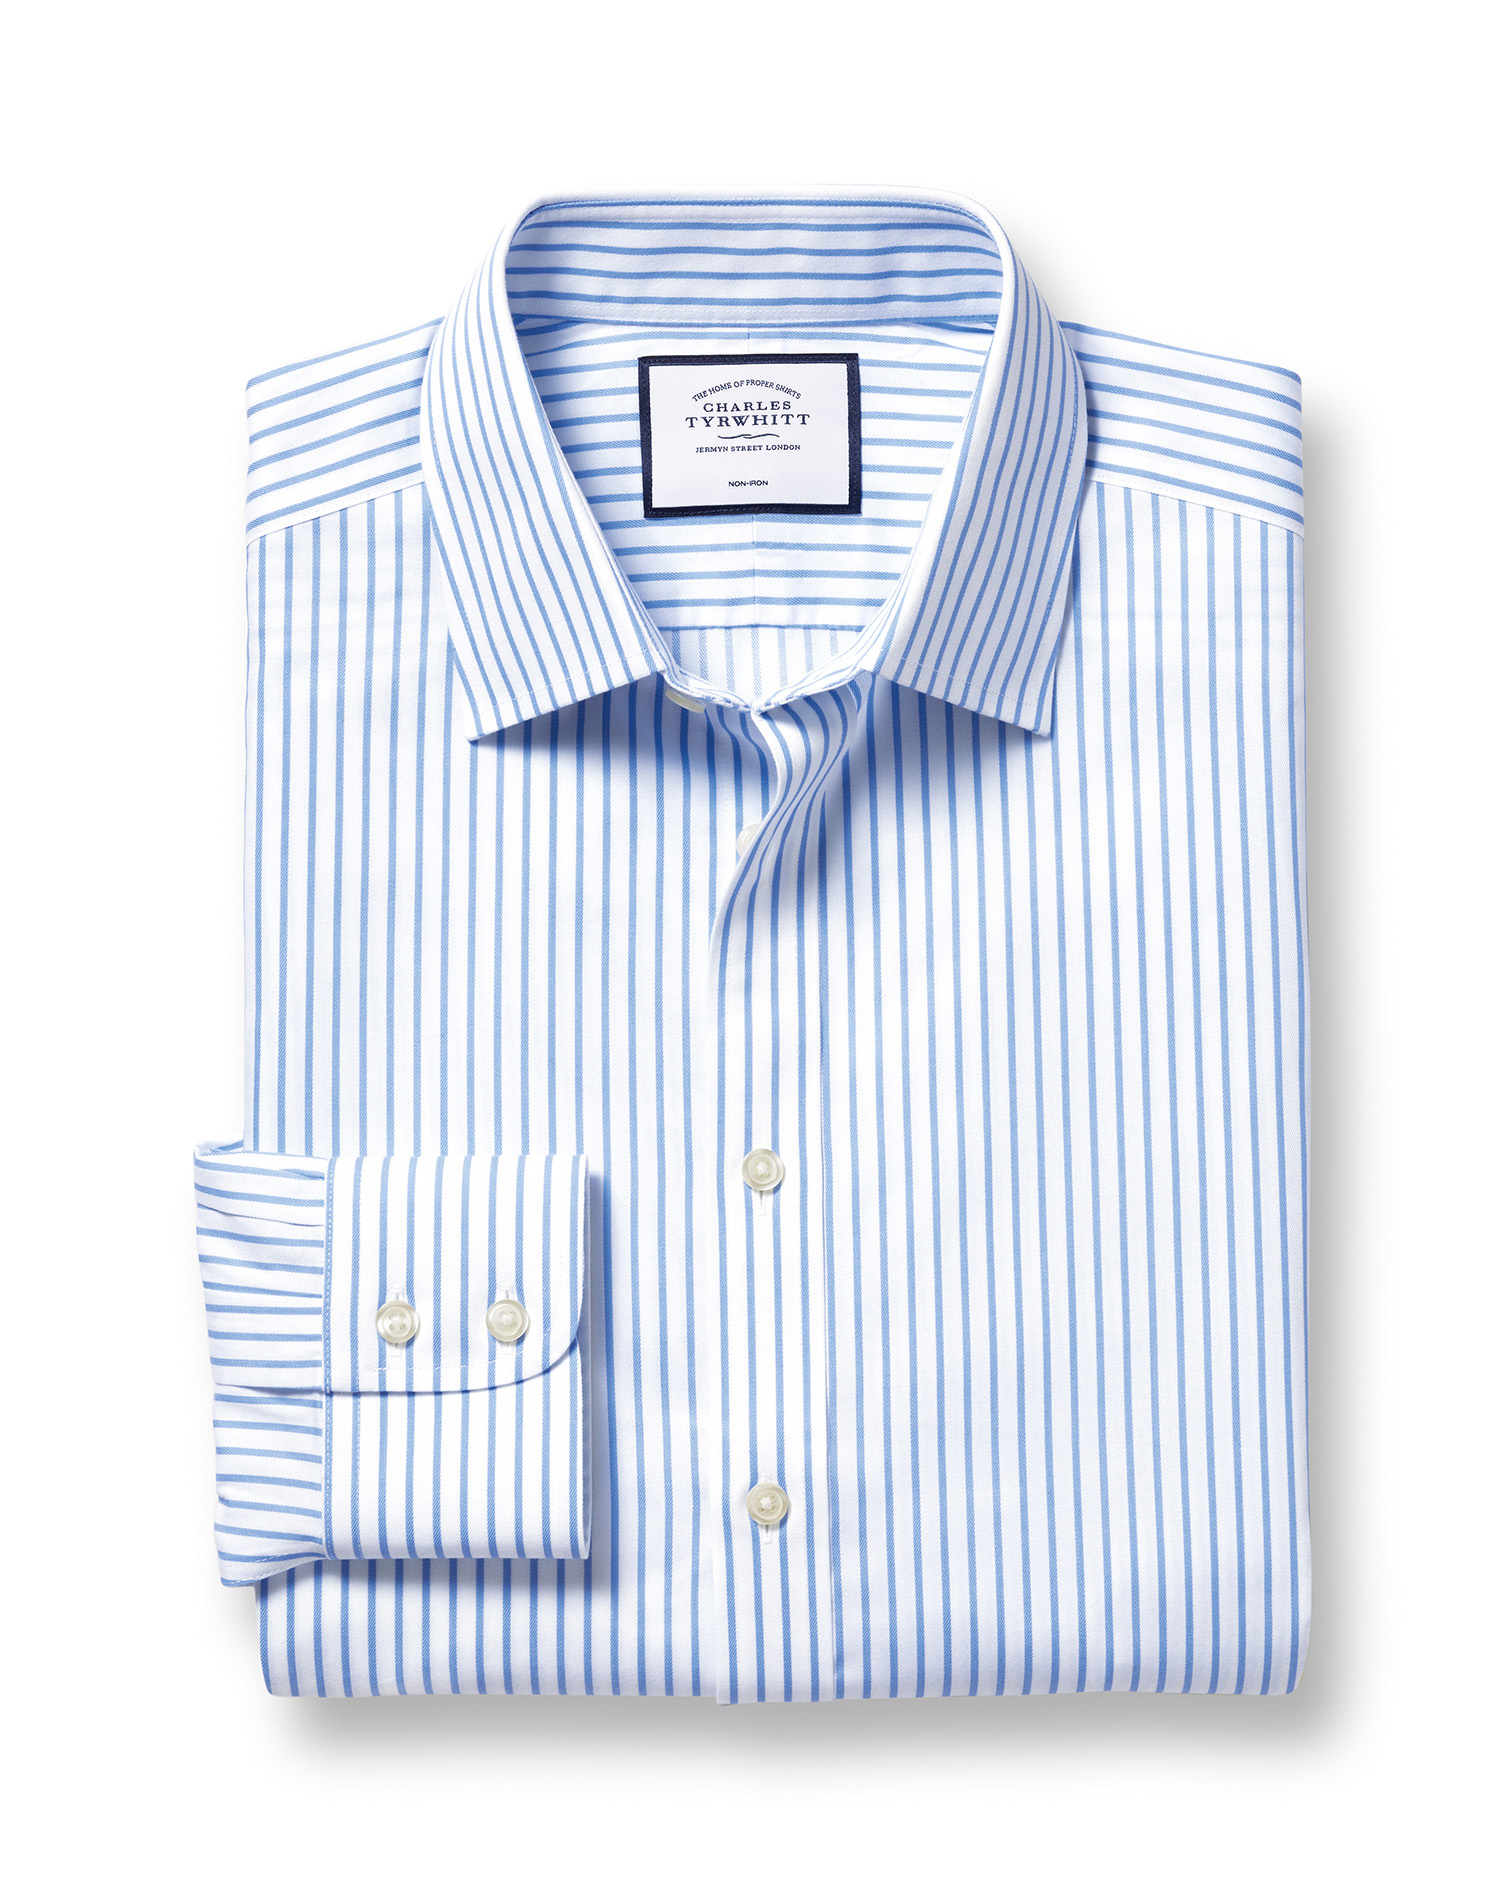 Classic Fit Non-Iron Twill White and Sky Blue Stripe Cotton Formal Shirt Double Cuff Size 17.5/36 by